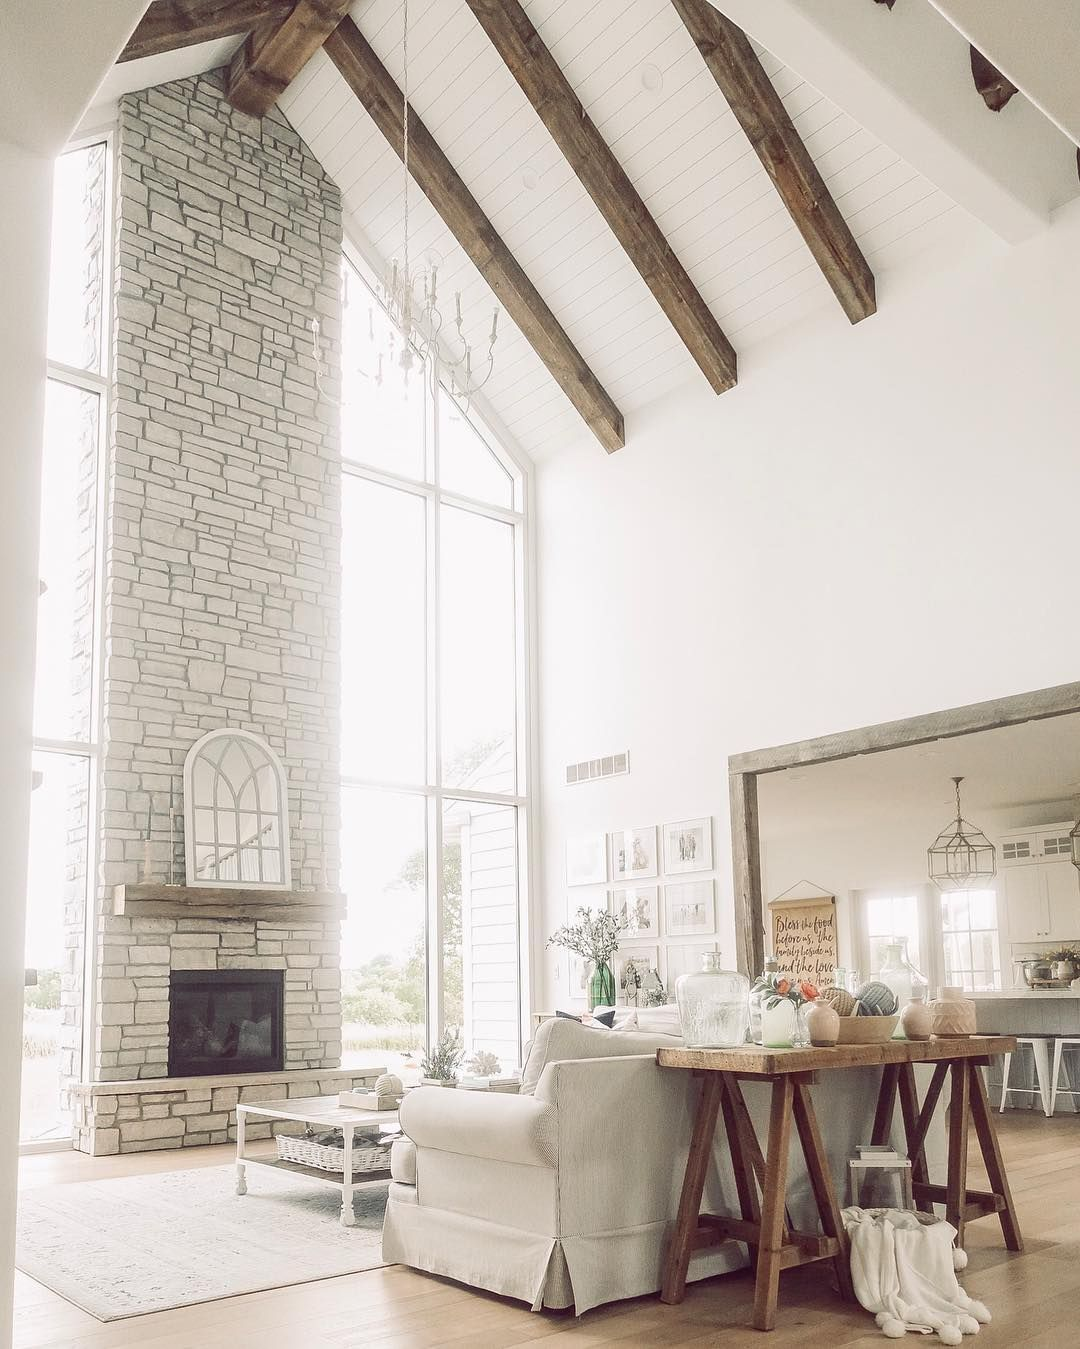 Surprising Vaulted Neutral Living Room With Stone Fireplace Farmhouse Gmtry Best Dining Table And Chair Ideas Images Gmtryco